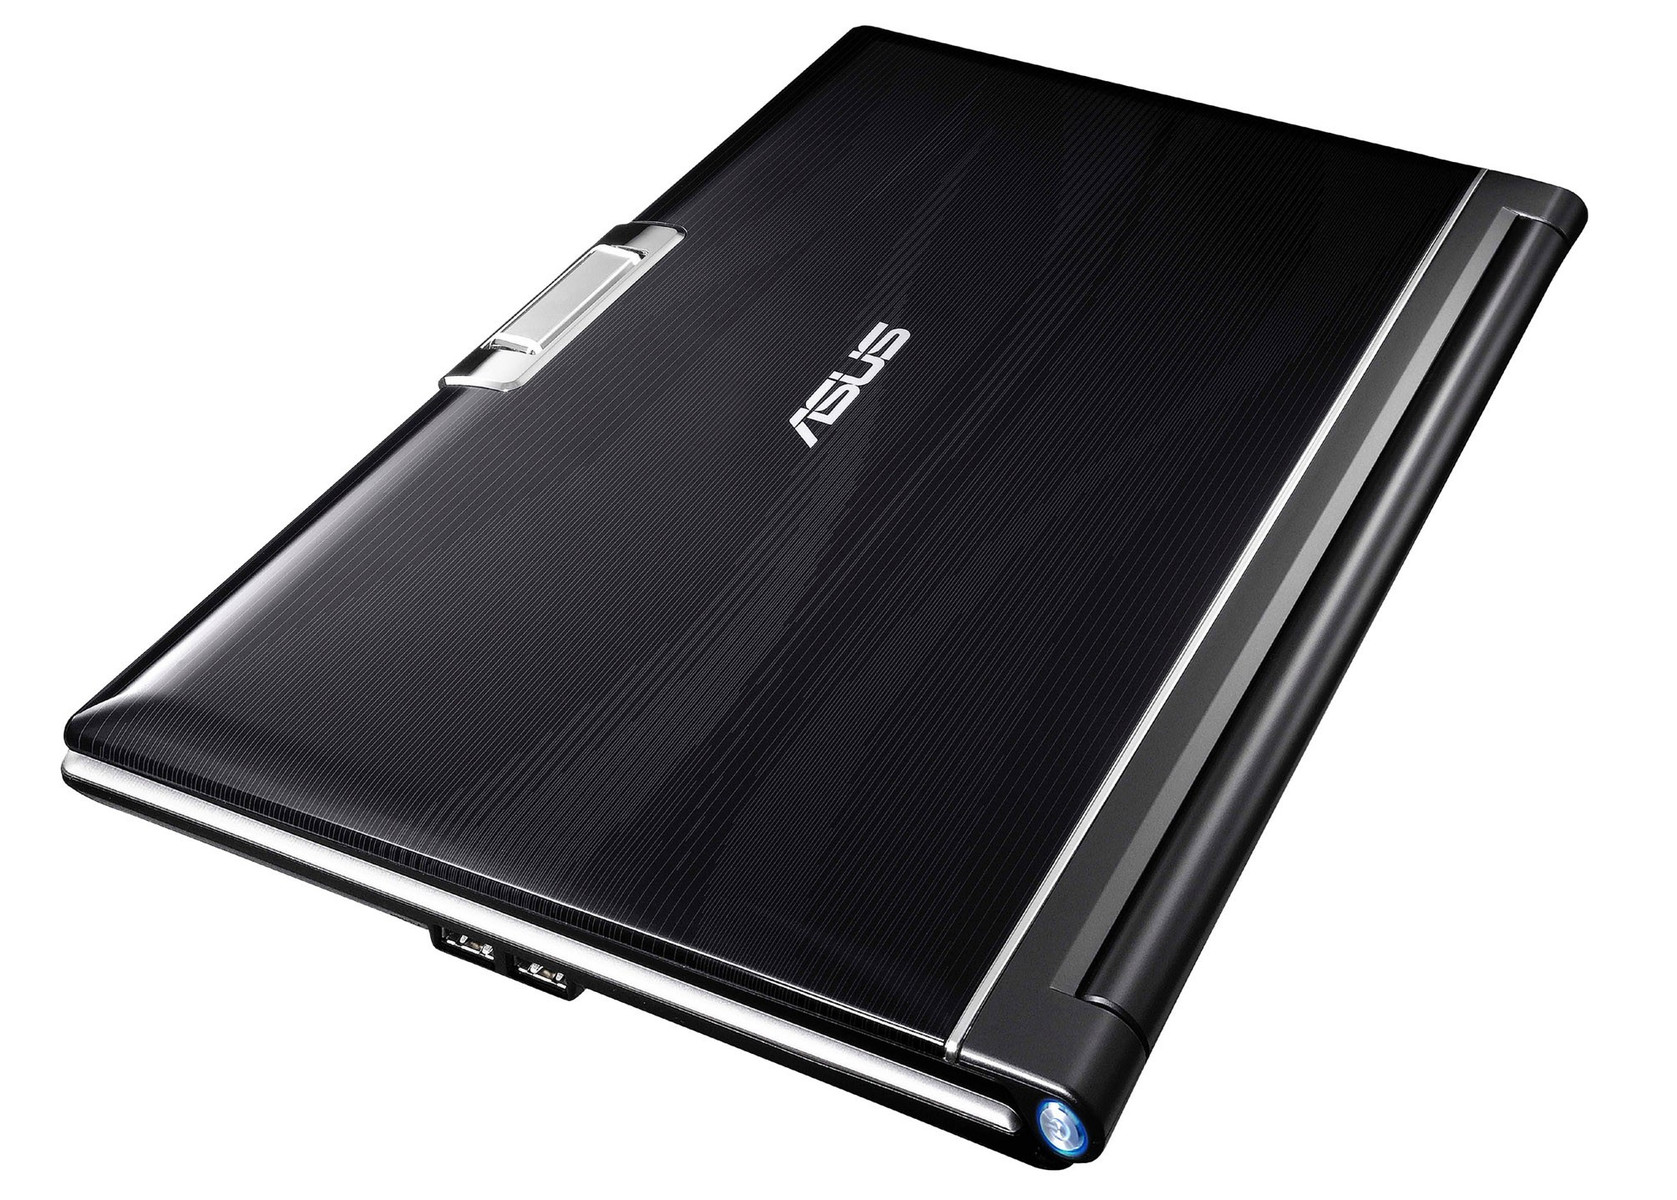 ASUS F8SN NOTEBOOK DRIVERS PC